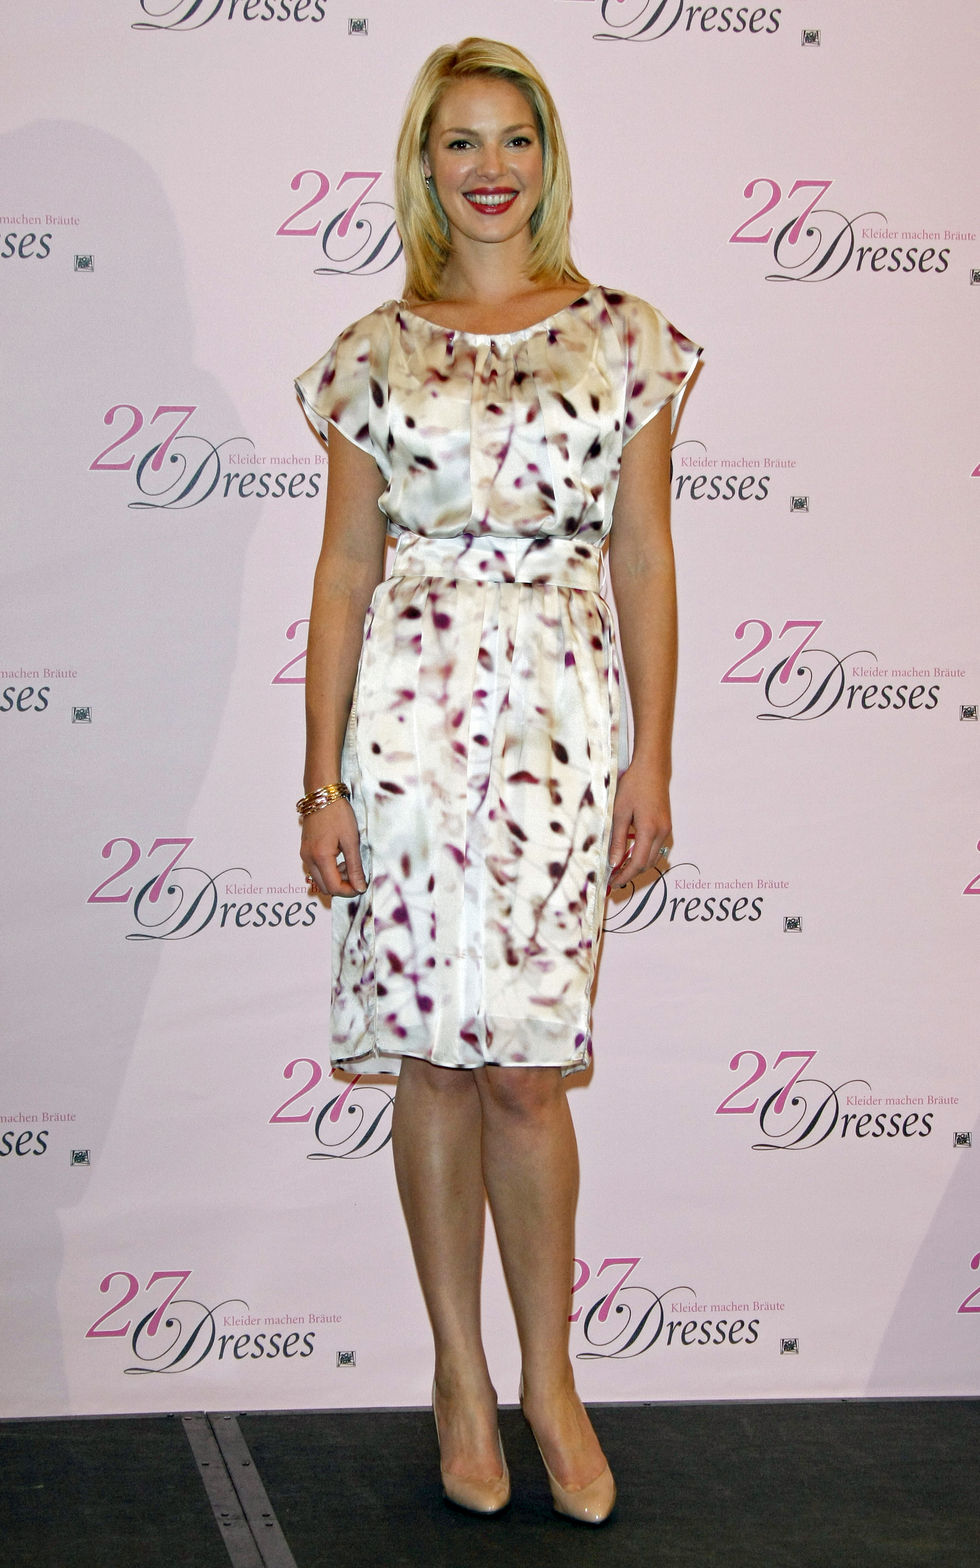 katherine-heigl-27-dresses-photocall-in-europe-01